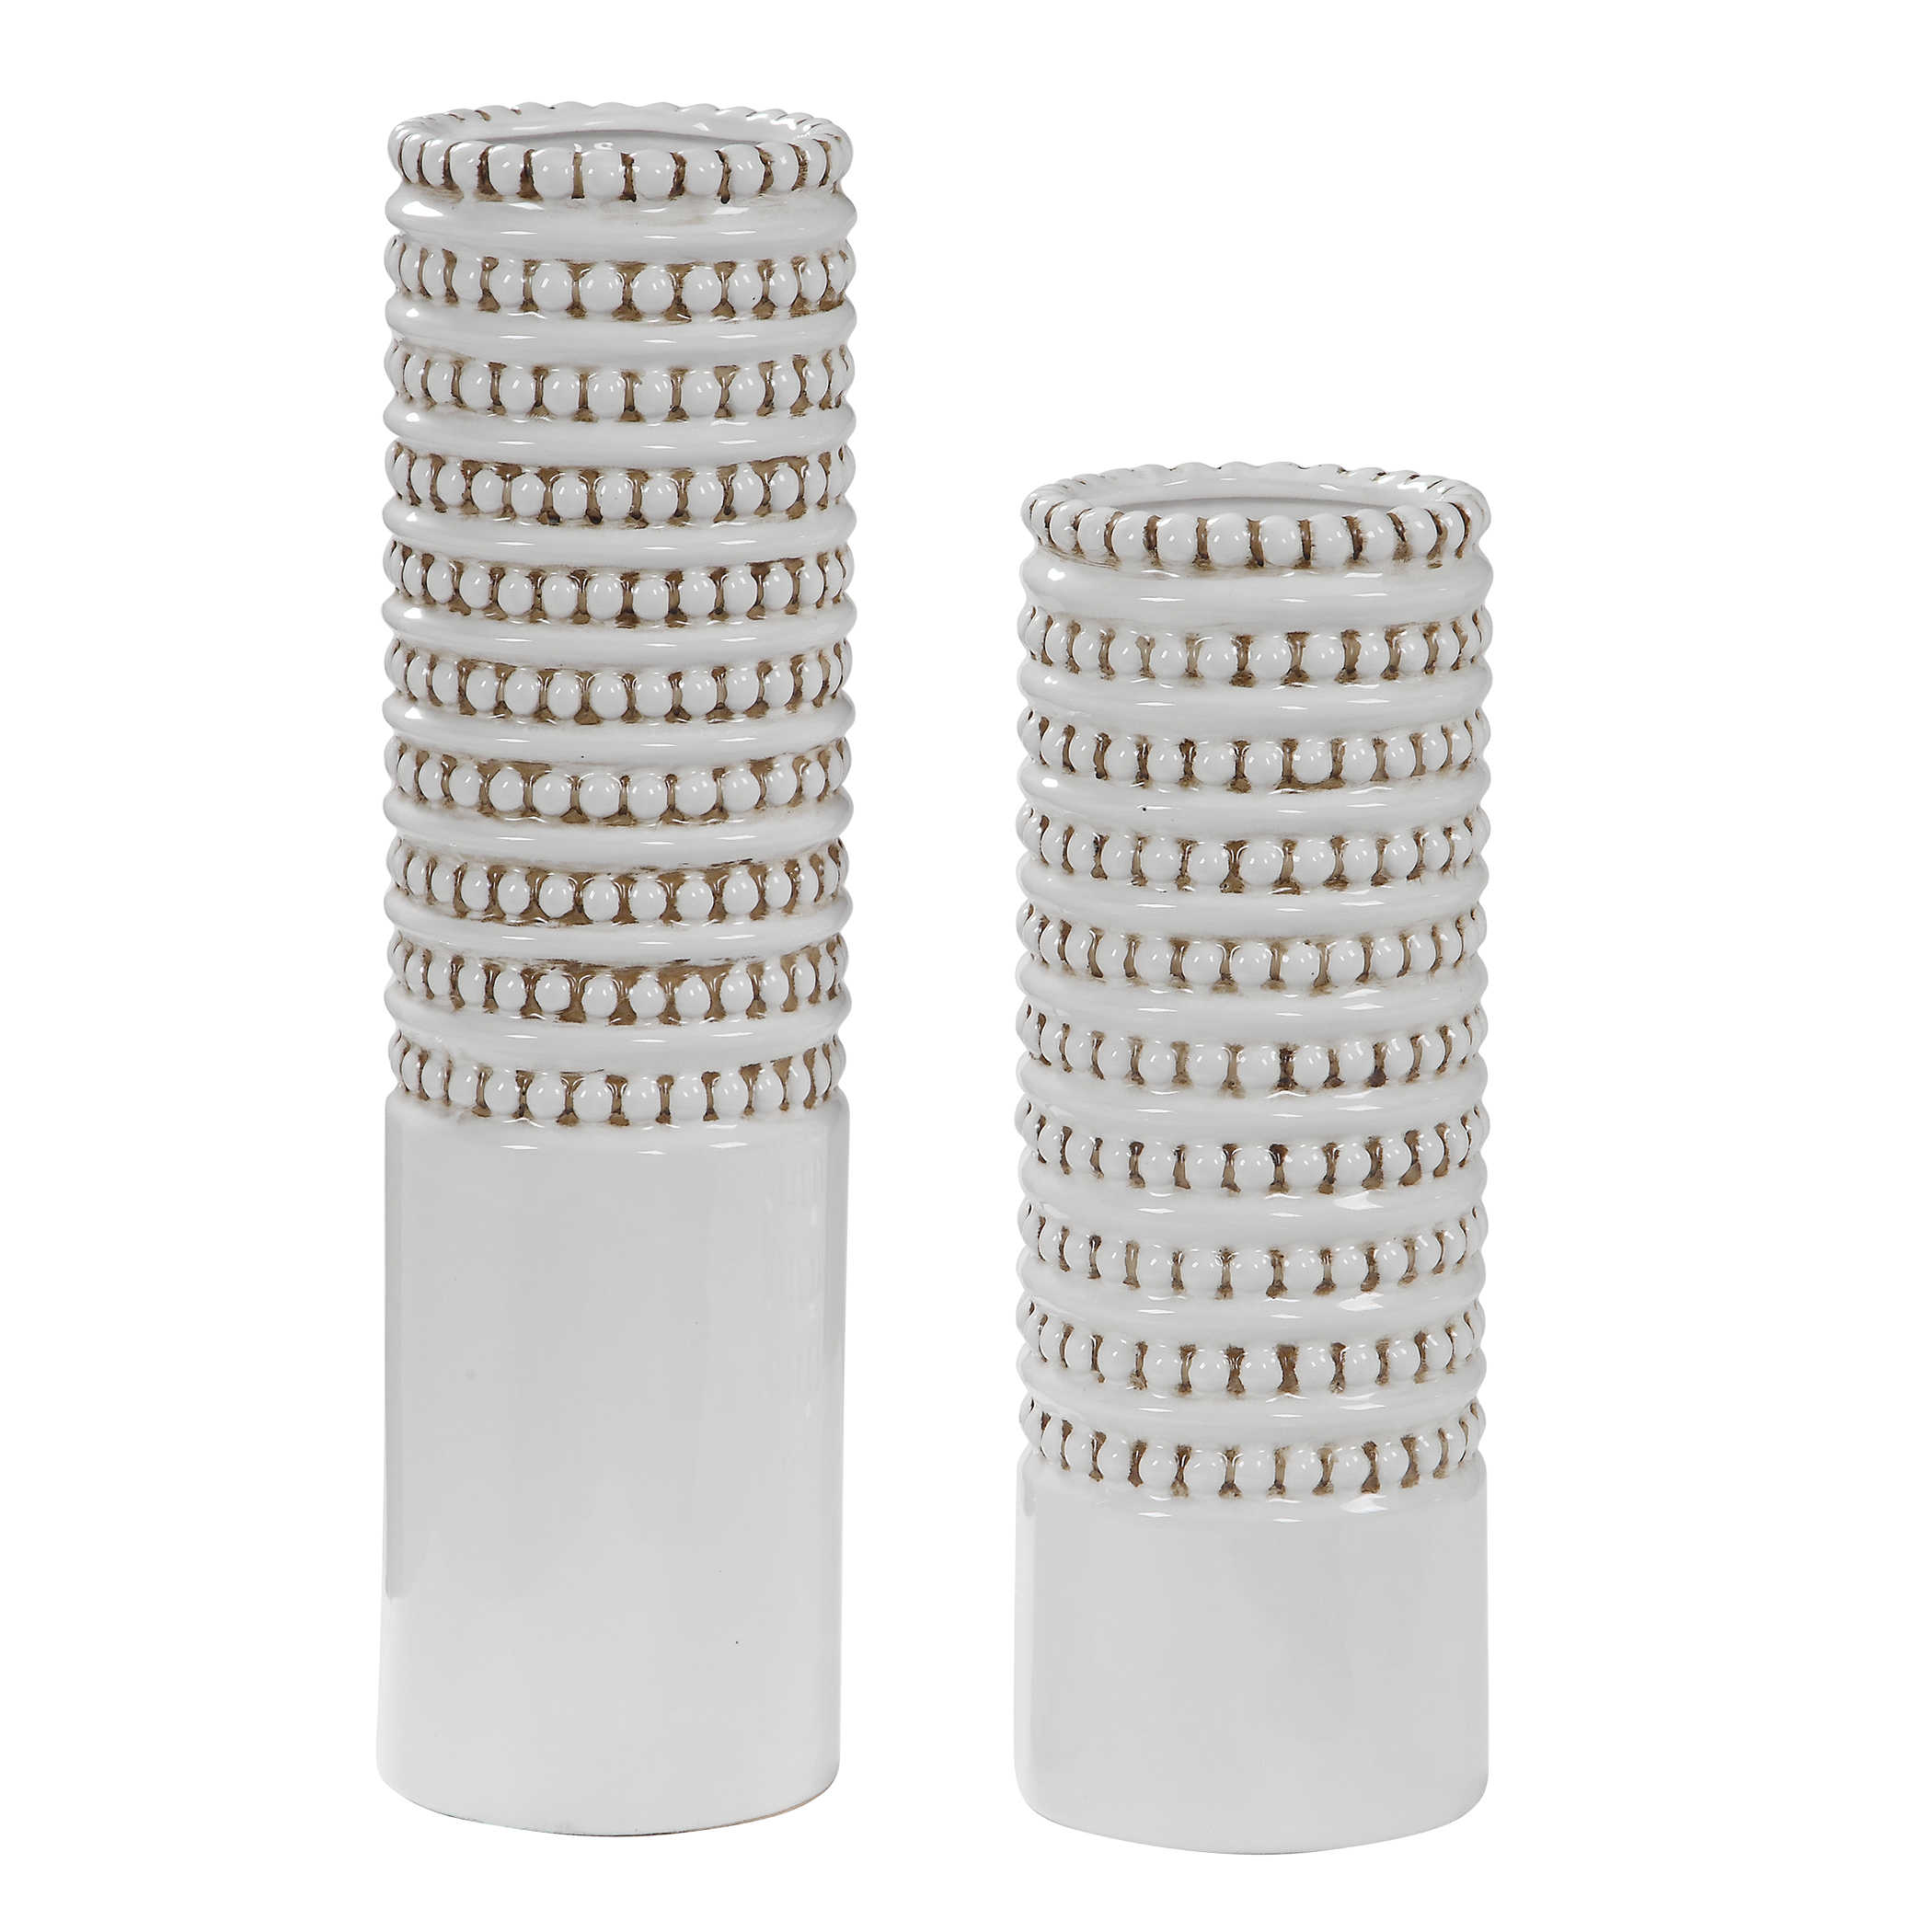 Uttermost Accessories Cayson Ribbed Ceramic Bottles S 2: Uttermost Angelou White Vases, Set/2